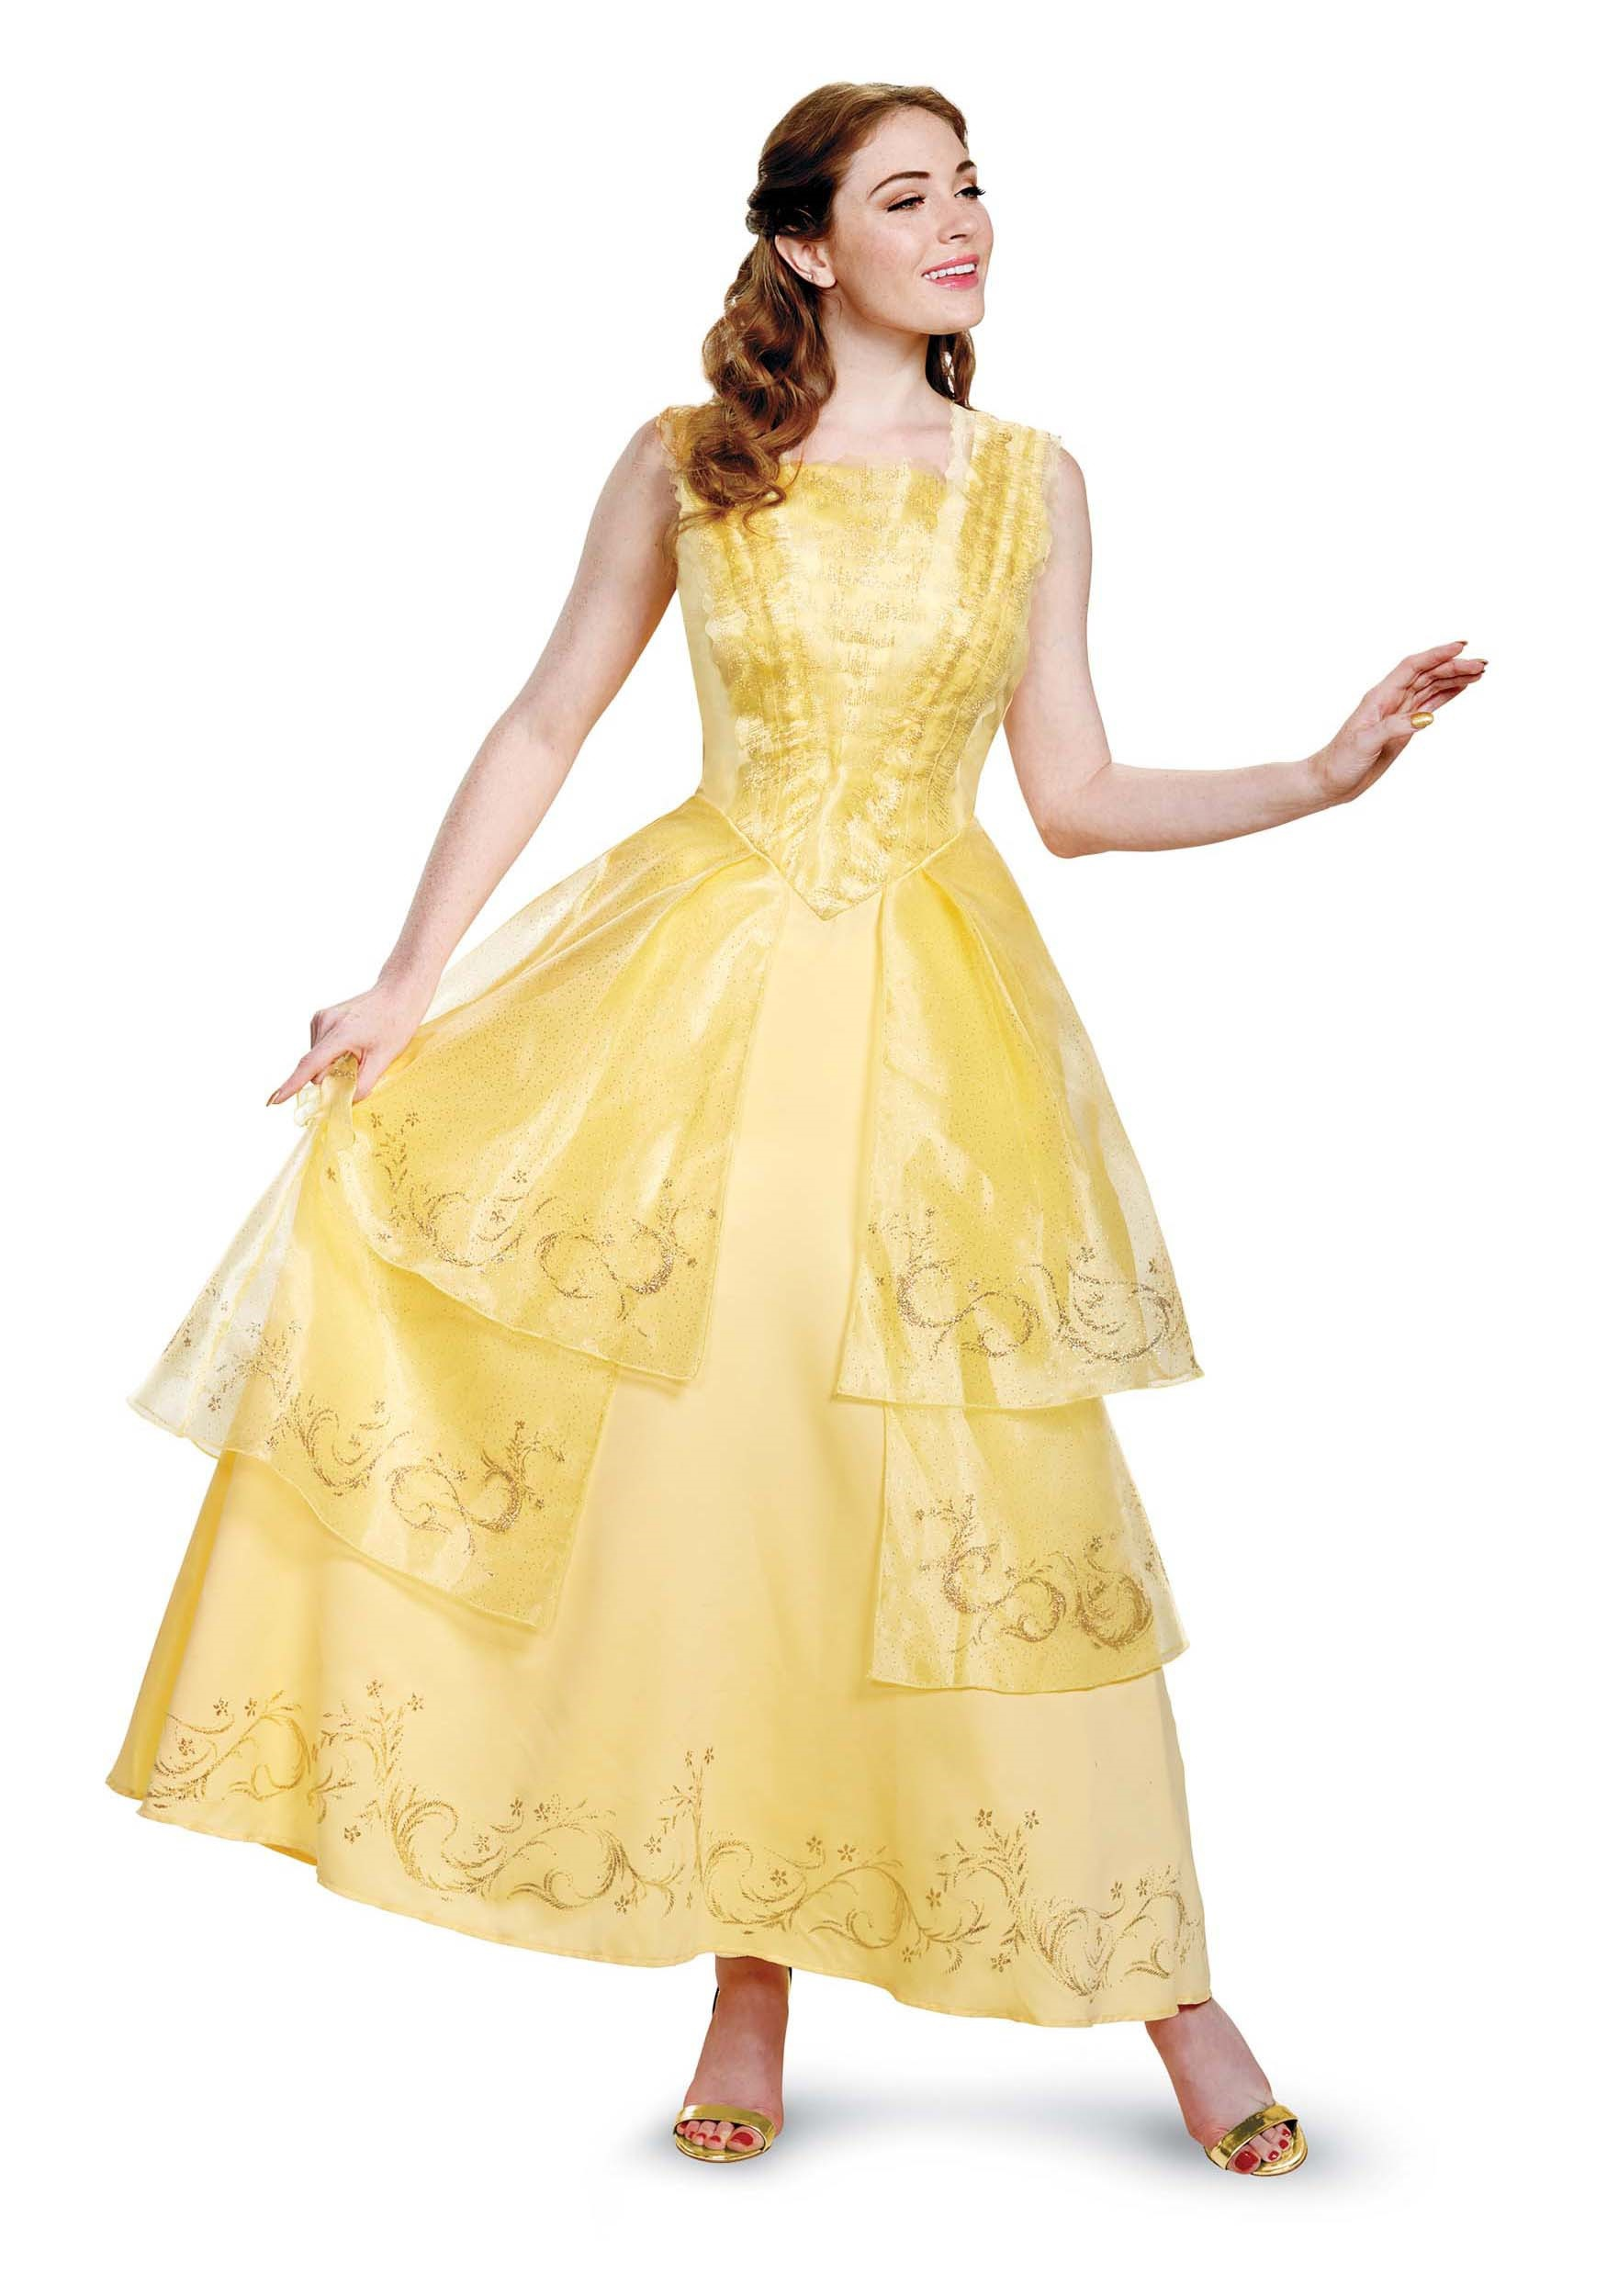 BELLE BALL GOWN PRESTIGE ADULT Officially licensed by Disney with back zipper